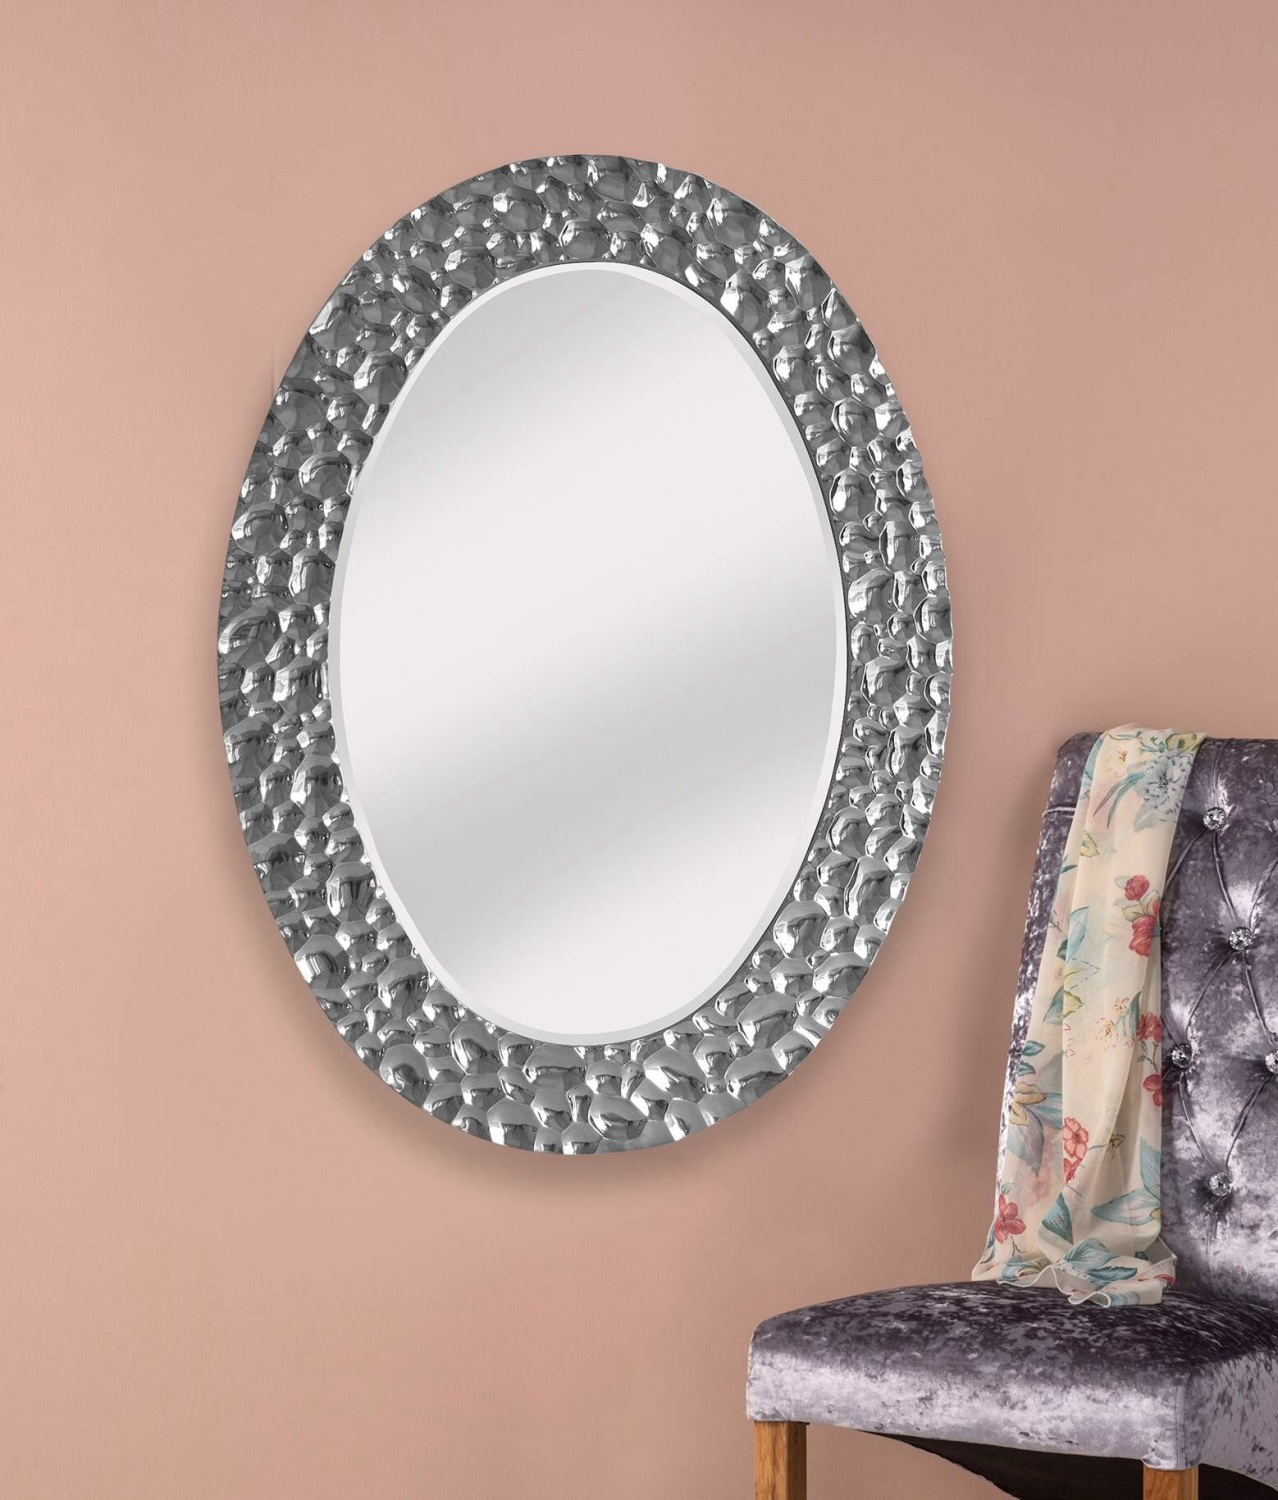 Stunning silver ripple large framed decorative oval mirror by stunning silver ripple large framed decorative oval mirror by outletmirrors amipublicfo Choice Image